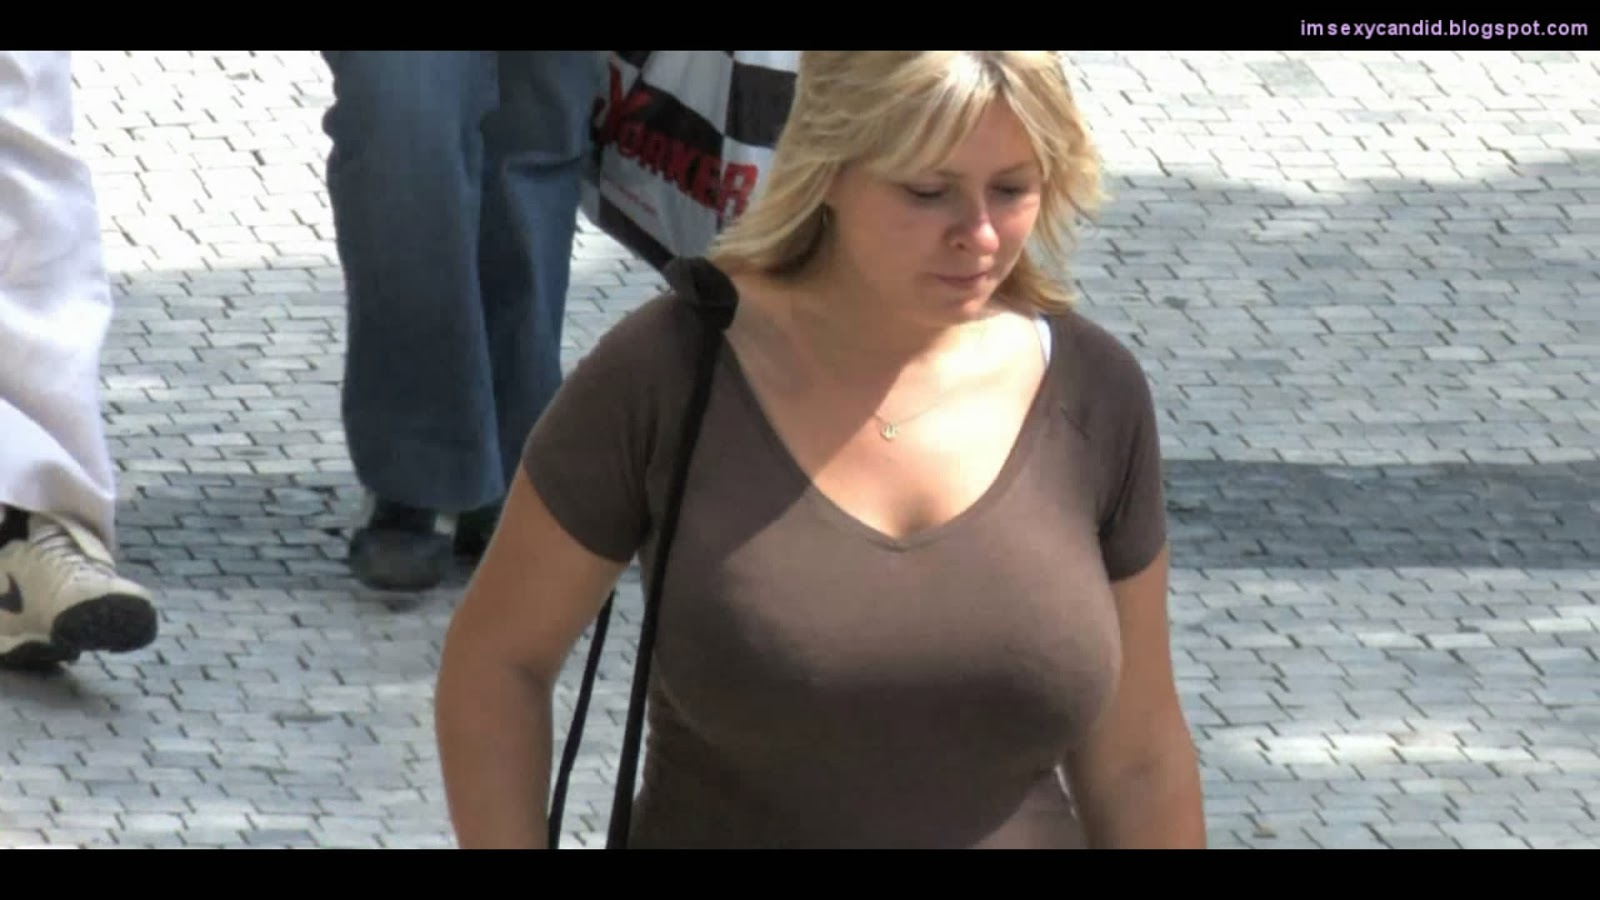 Milf Big Boobs Bouncing On Street Mp Snapshot B